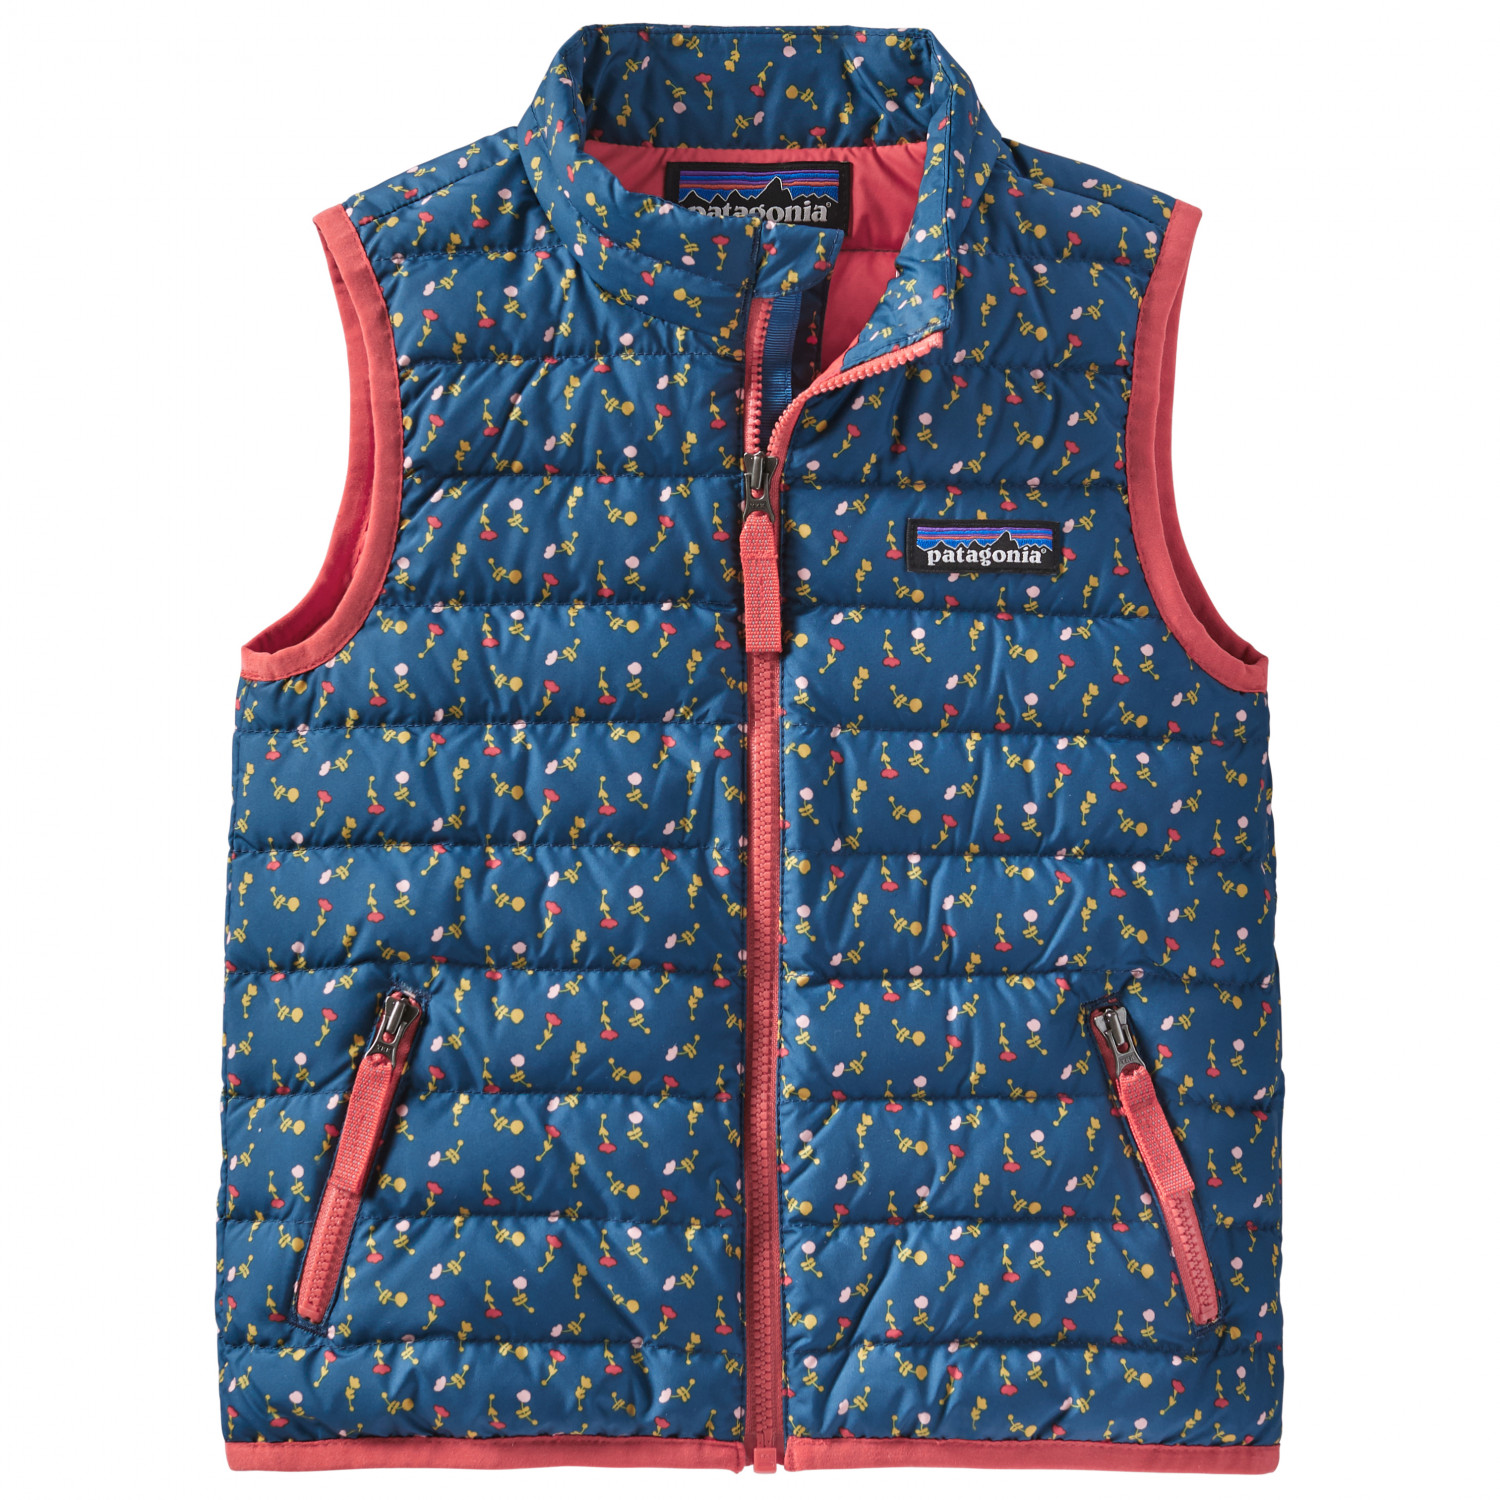 6c3f08354 Patagonia Baby Down Sweater Vest - Down Vest Kids | Free UK Delivery |  Alpinetrek.co.uk